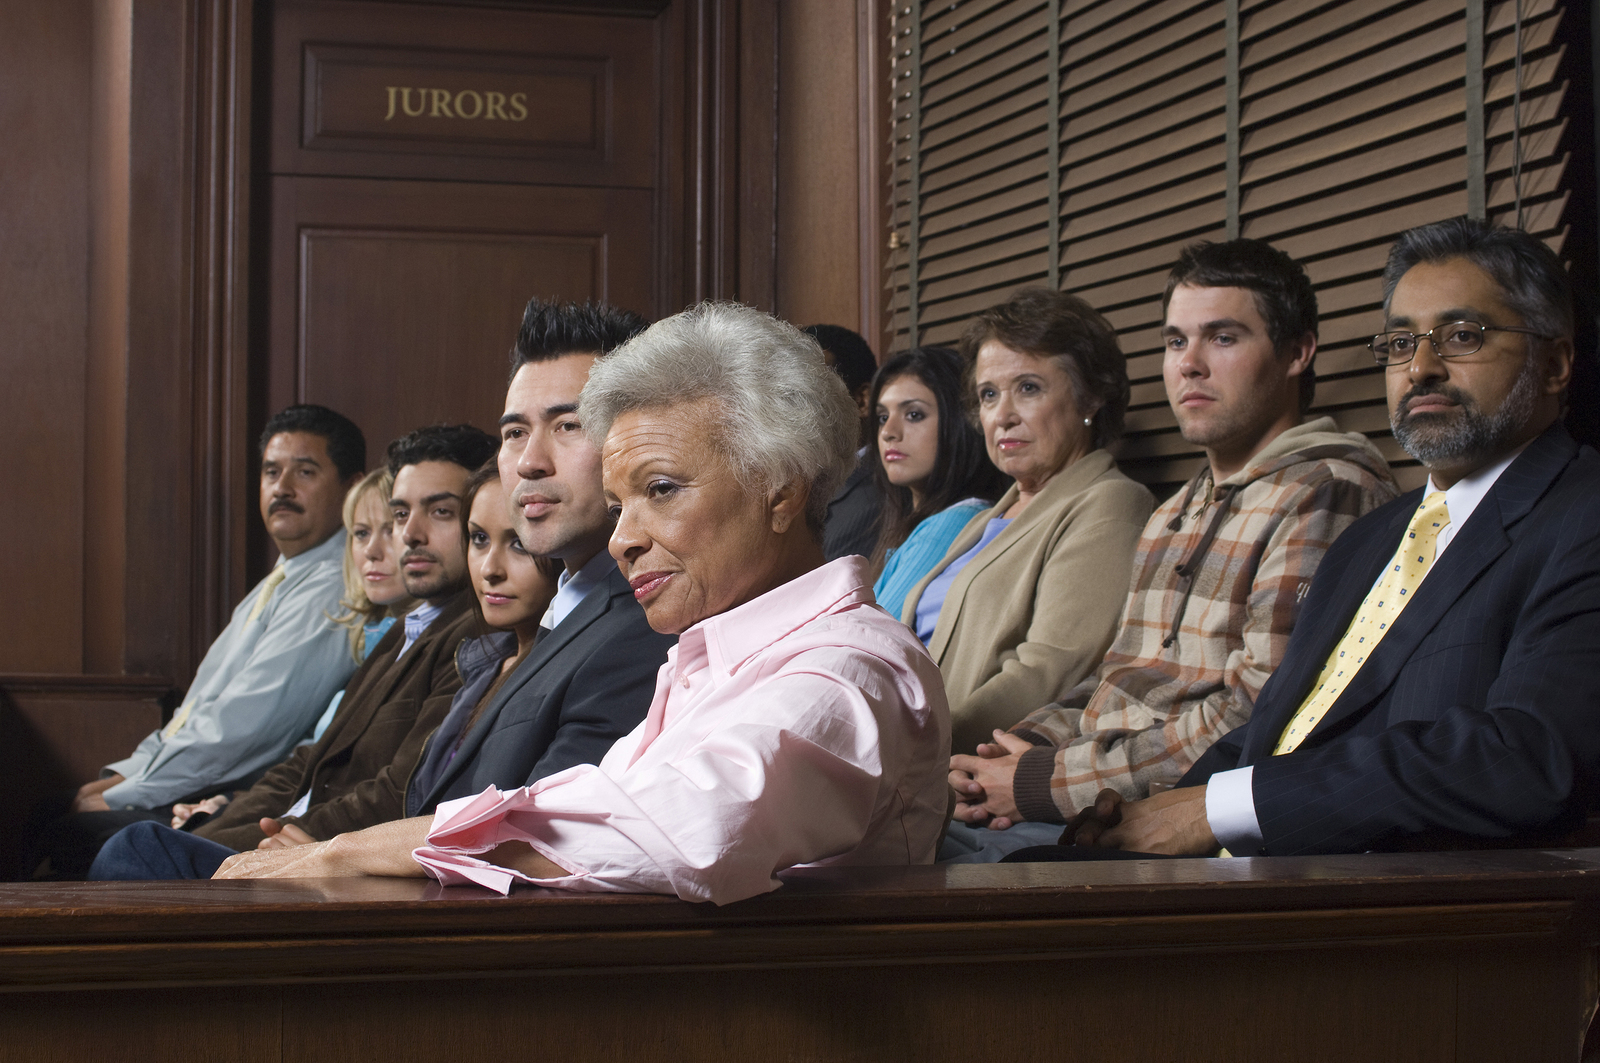 Multi ethnic jurors in witness stand of court house